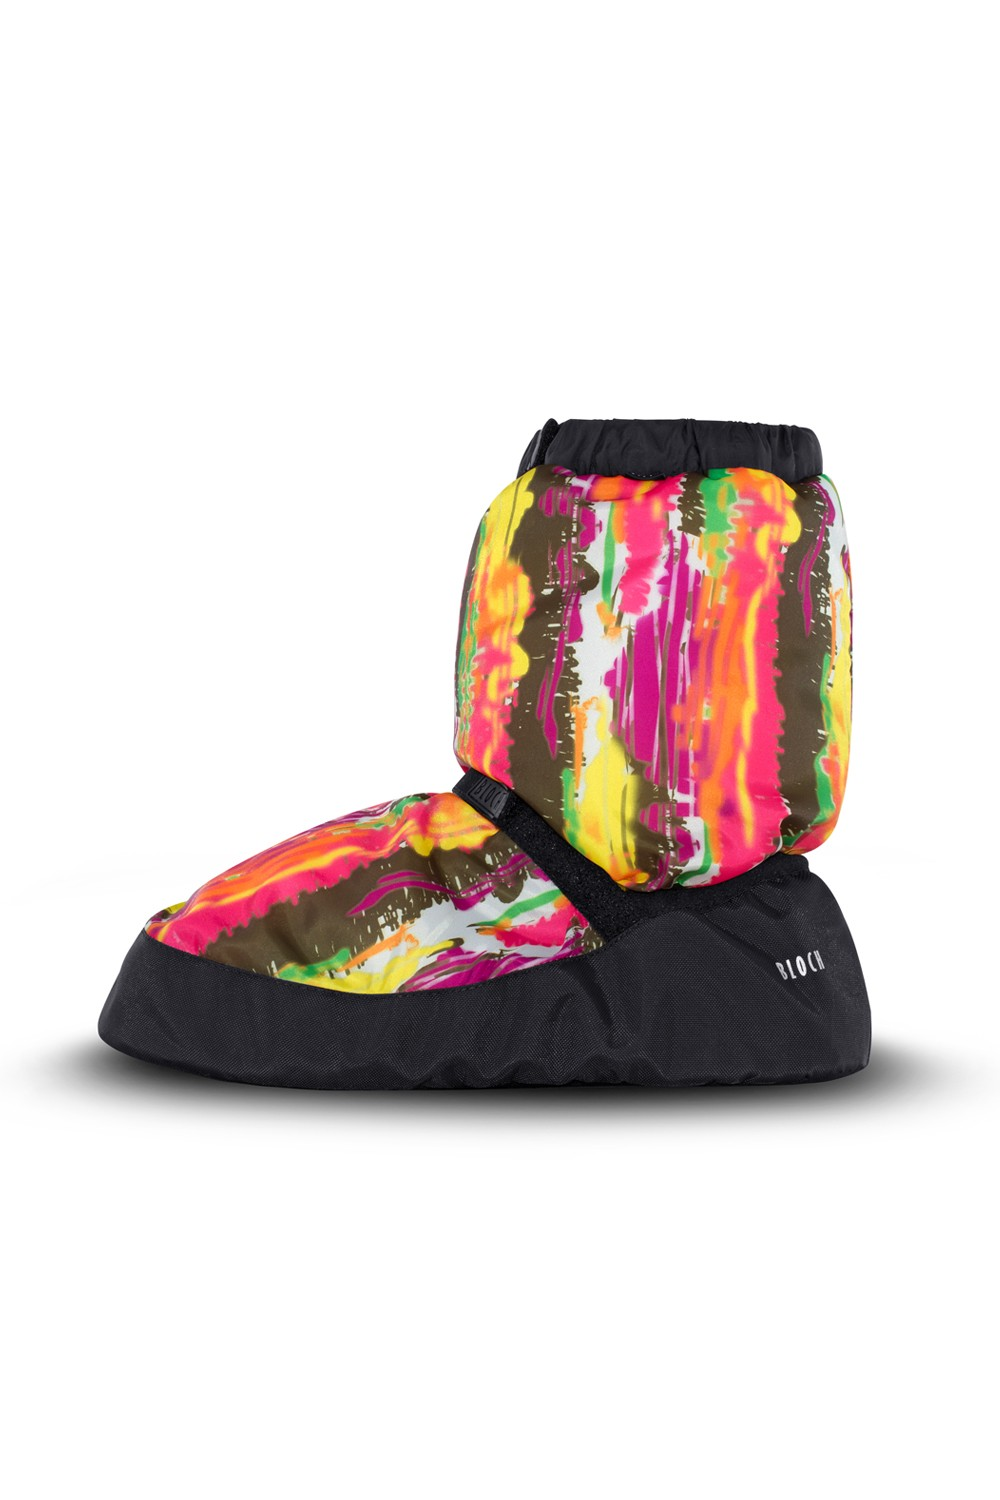 Printed Booties Women's Dance Warmups